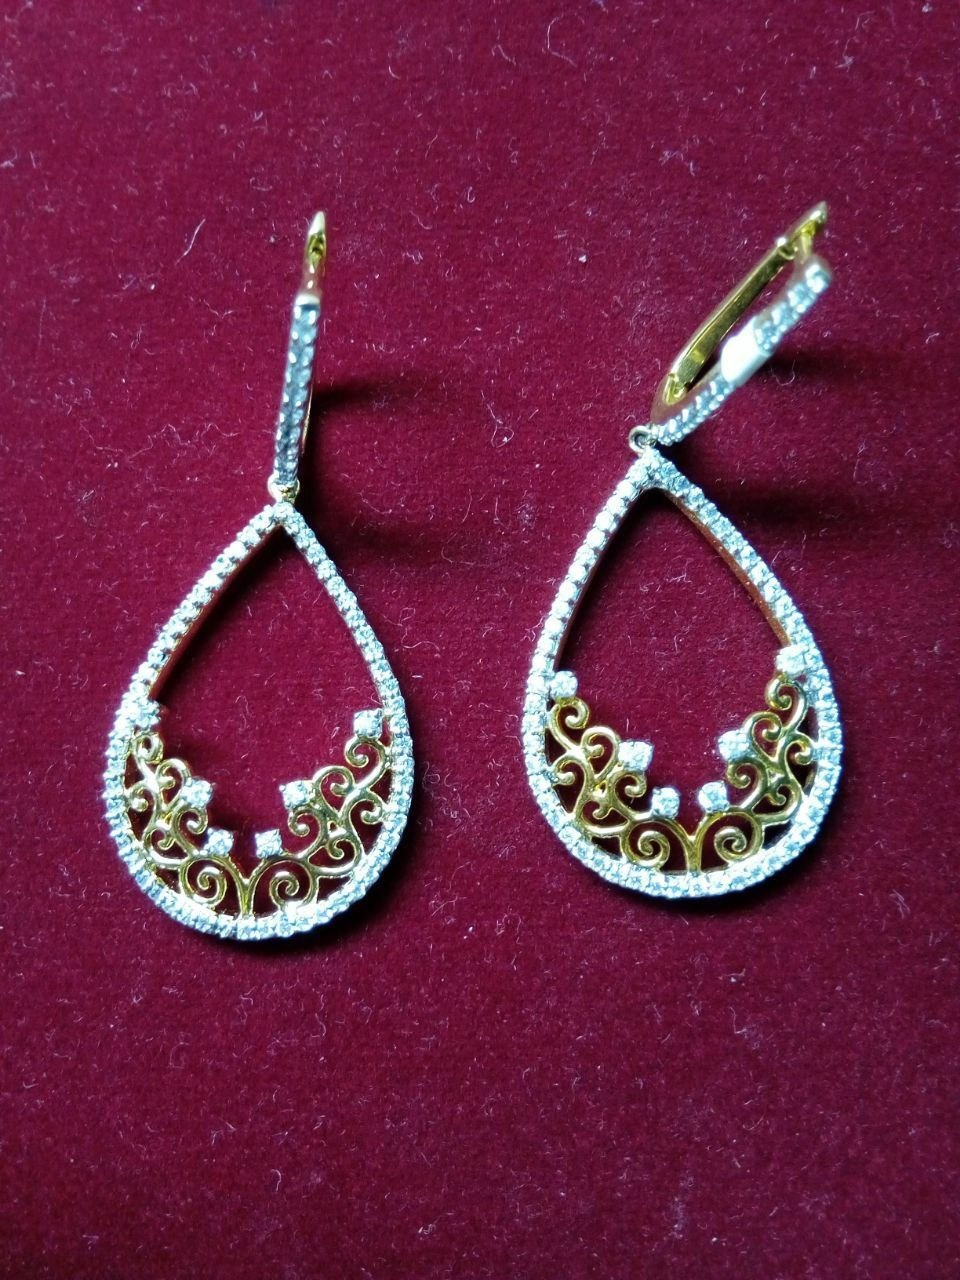 0.2Ct Round Cut Diamond Chandelier Earrings in 18k Yellow gold Over Prong D VSS1